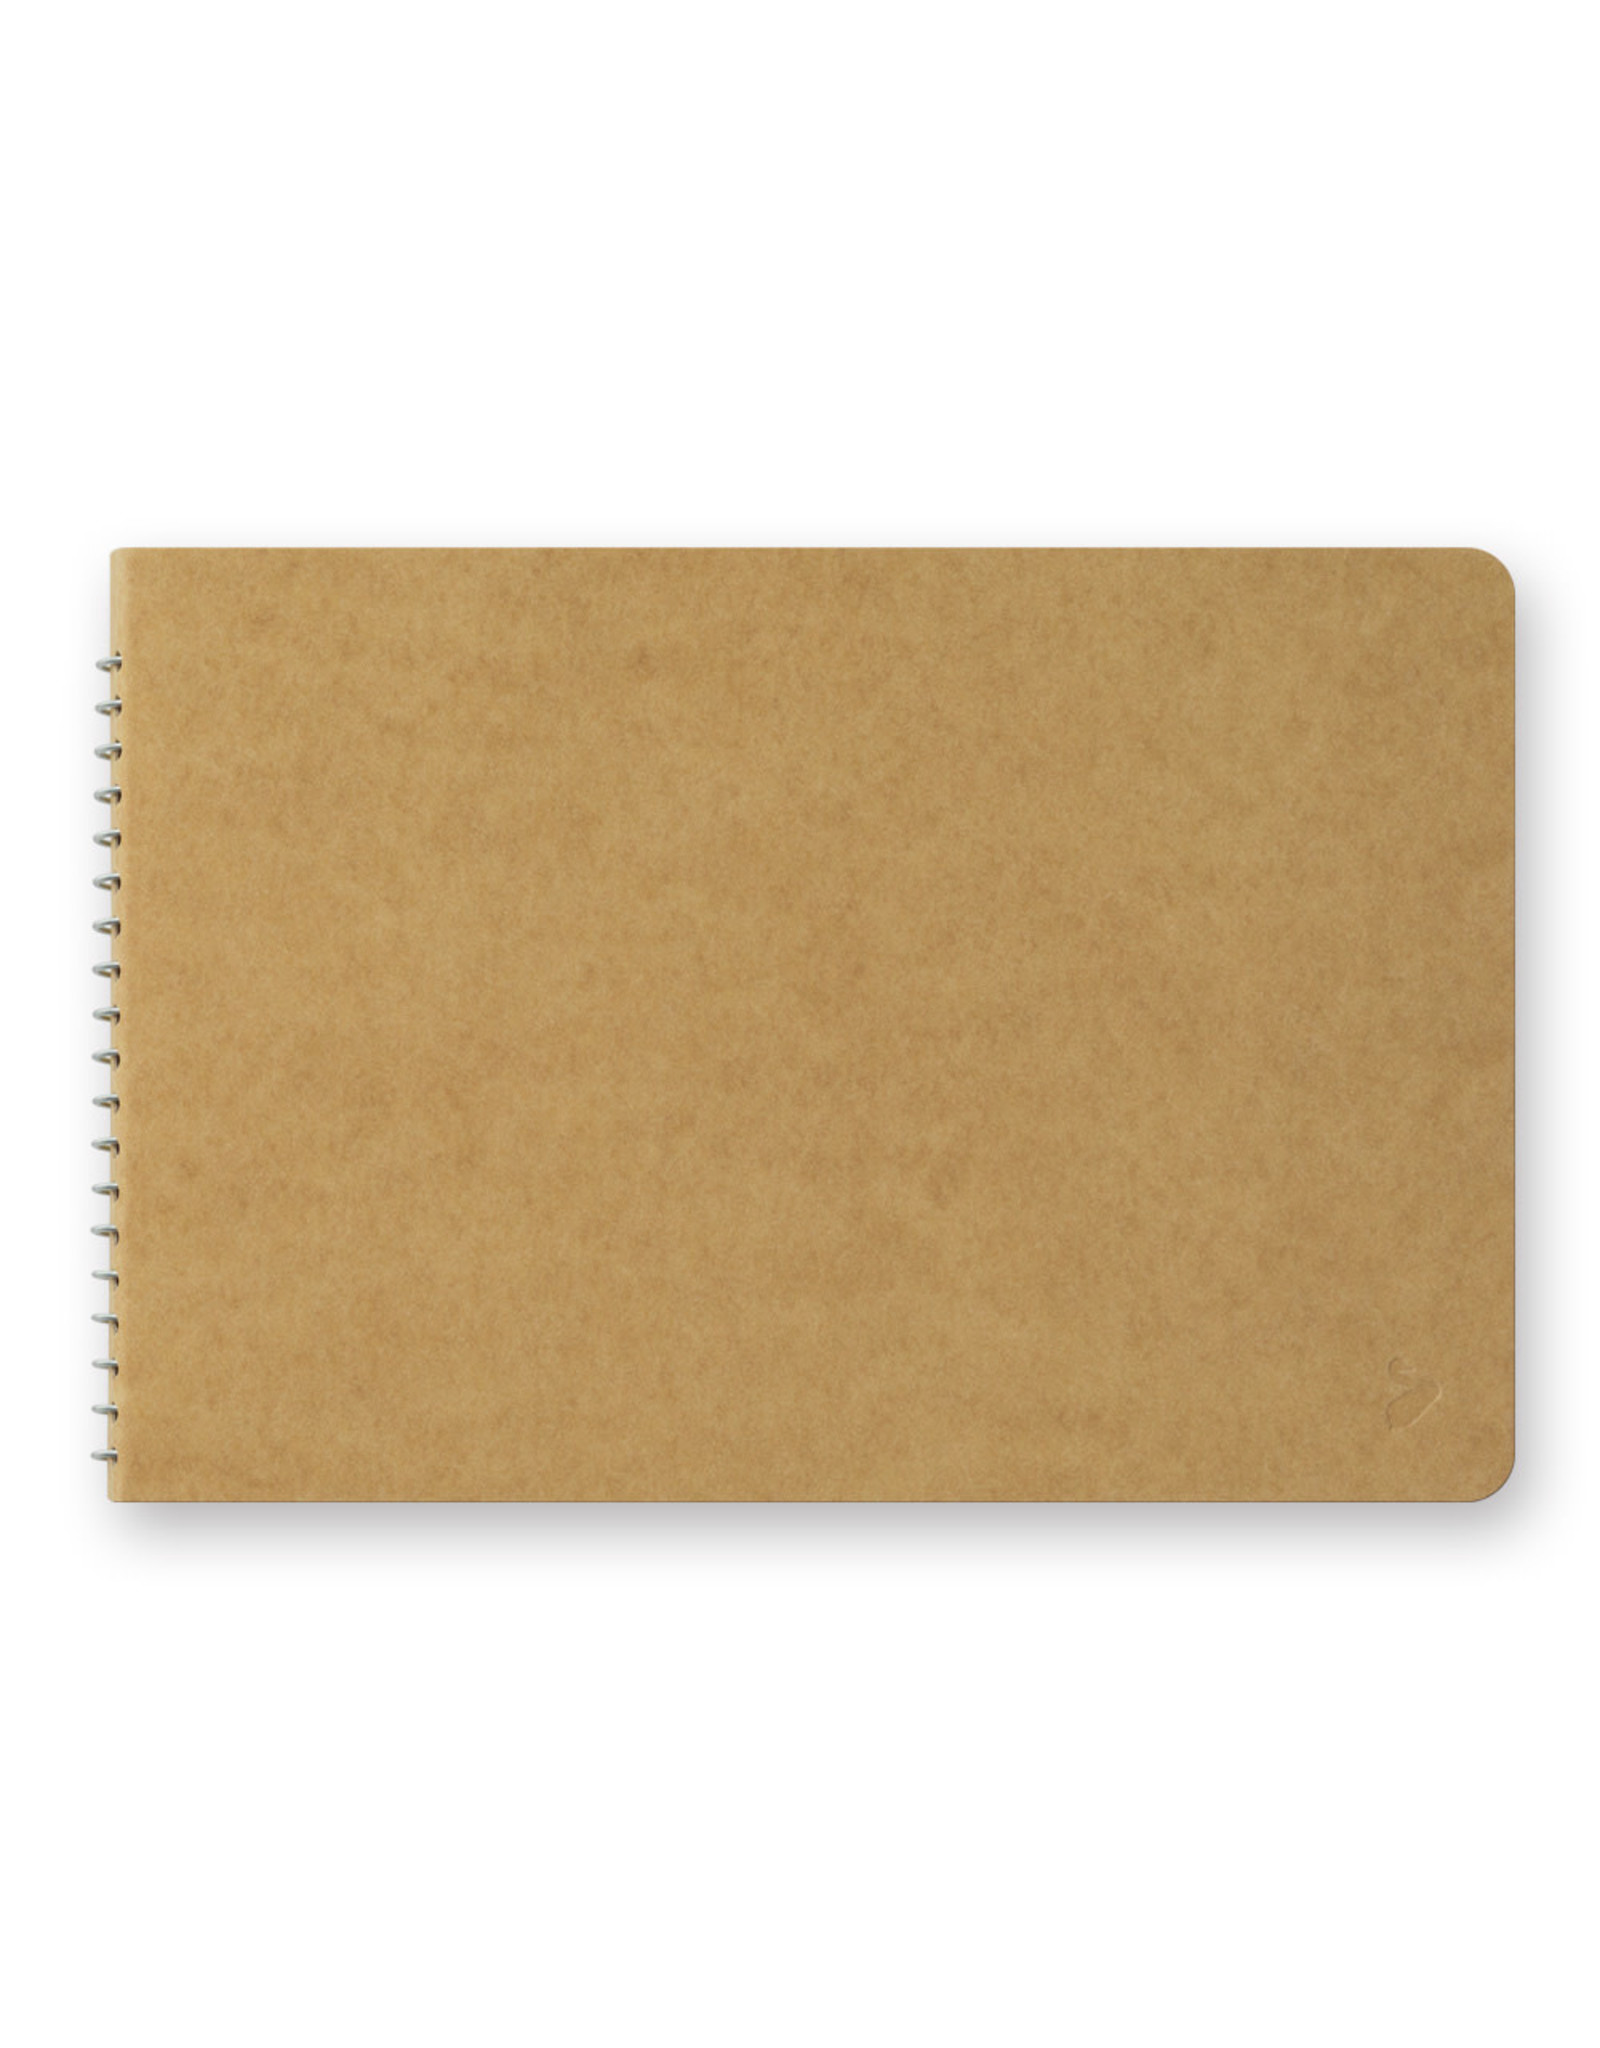 Traveler's Company SPIRAL RING NOTEBOOK B6 WATERCOLOR PAPER 20 SHEETS (40 PAGES)